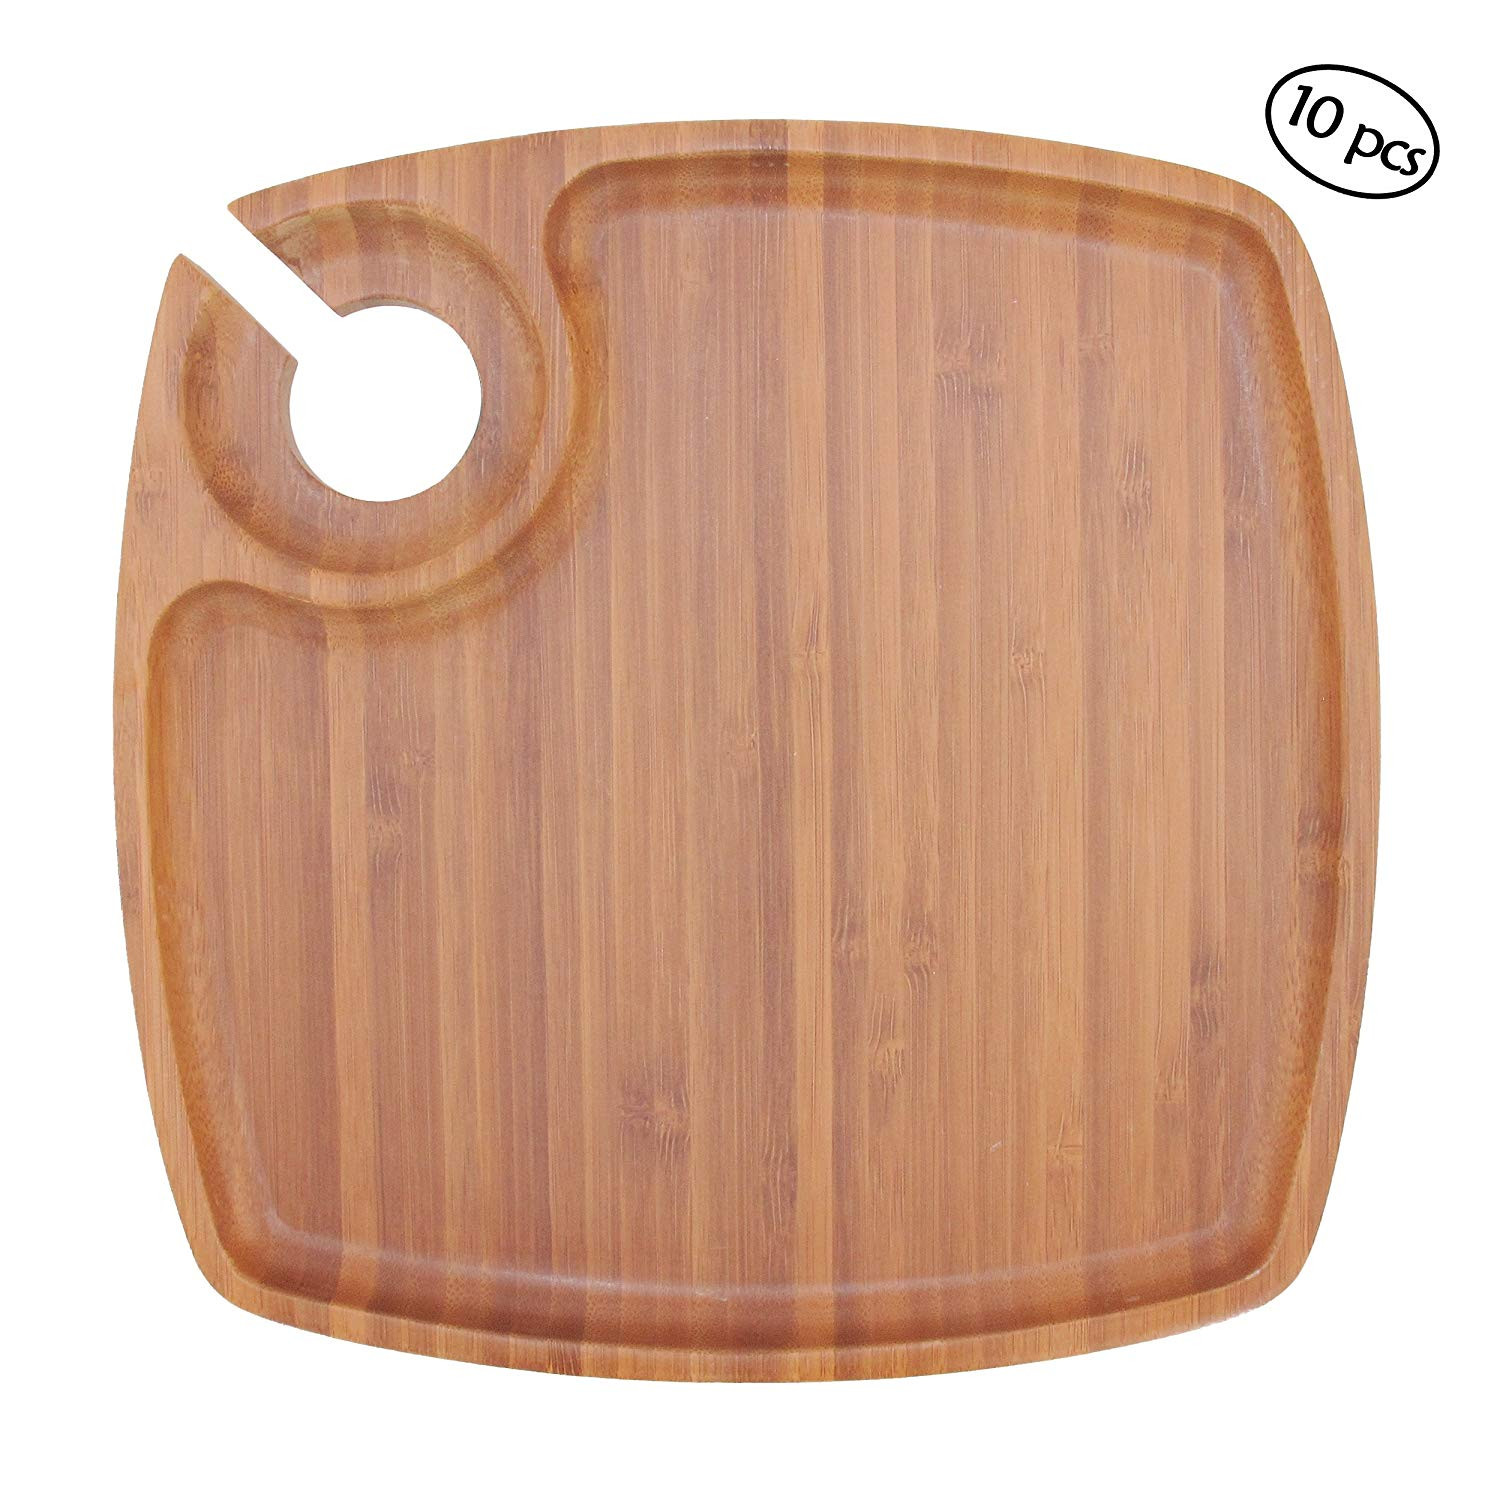 palm acacia hardwood flooring of amazon com bamboomn 10 x 10 bamboo ecoware reusable dinnerware within amazon com bamboomn 10 x 10 bamboo ecoware reusable dinnerware cup wine holder square plates for catered events holidays or home use supplies